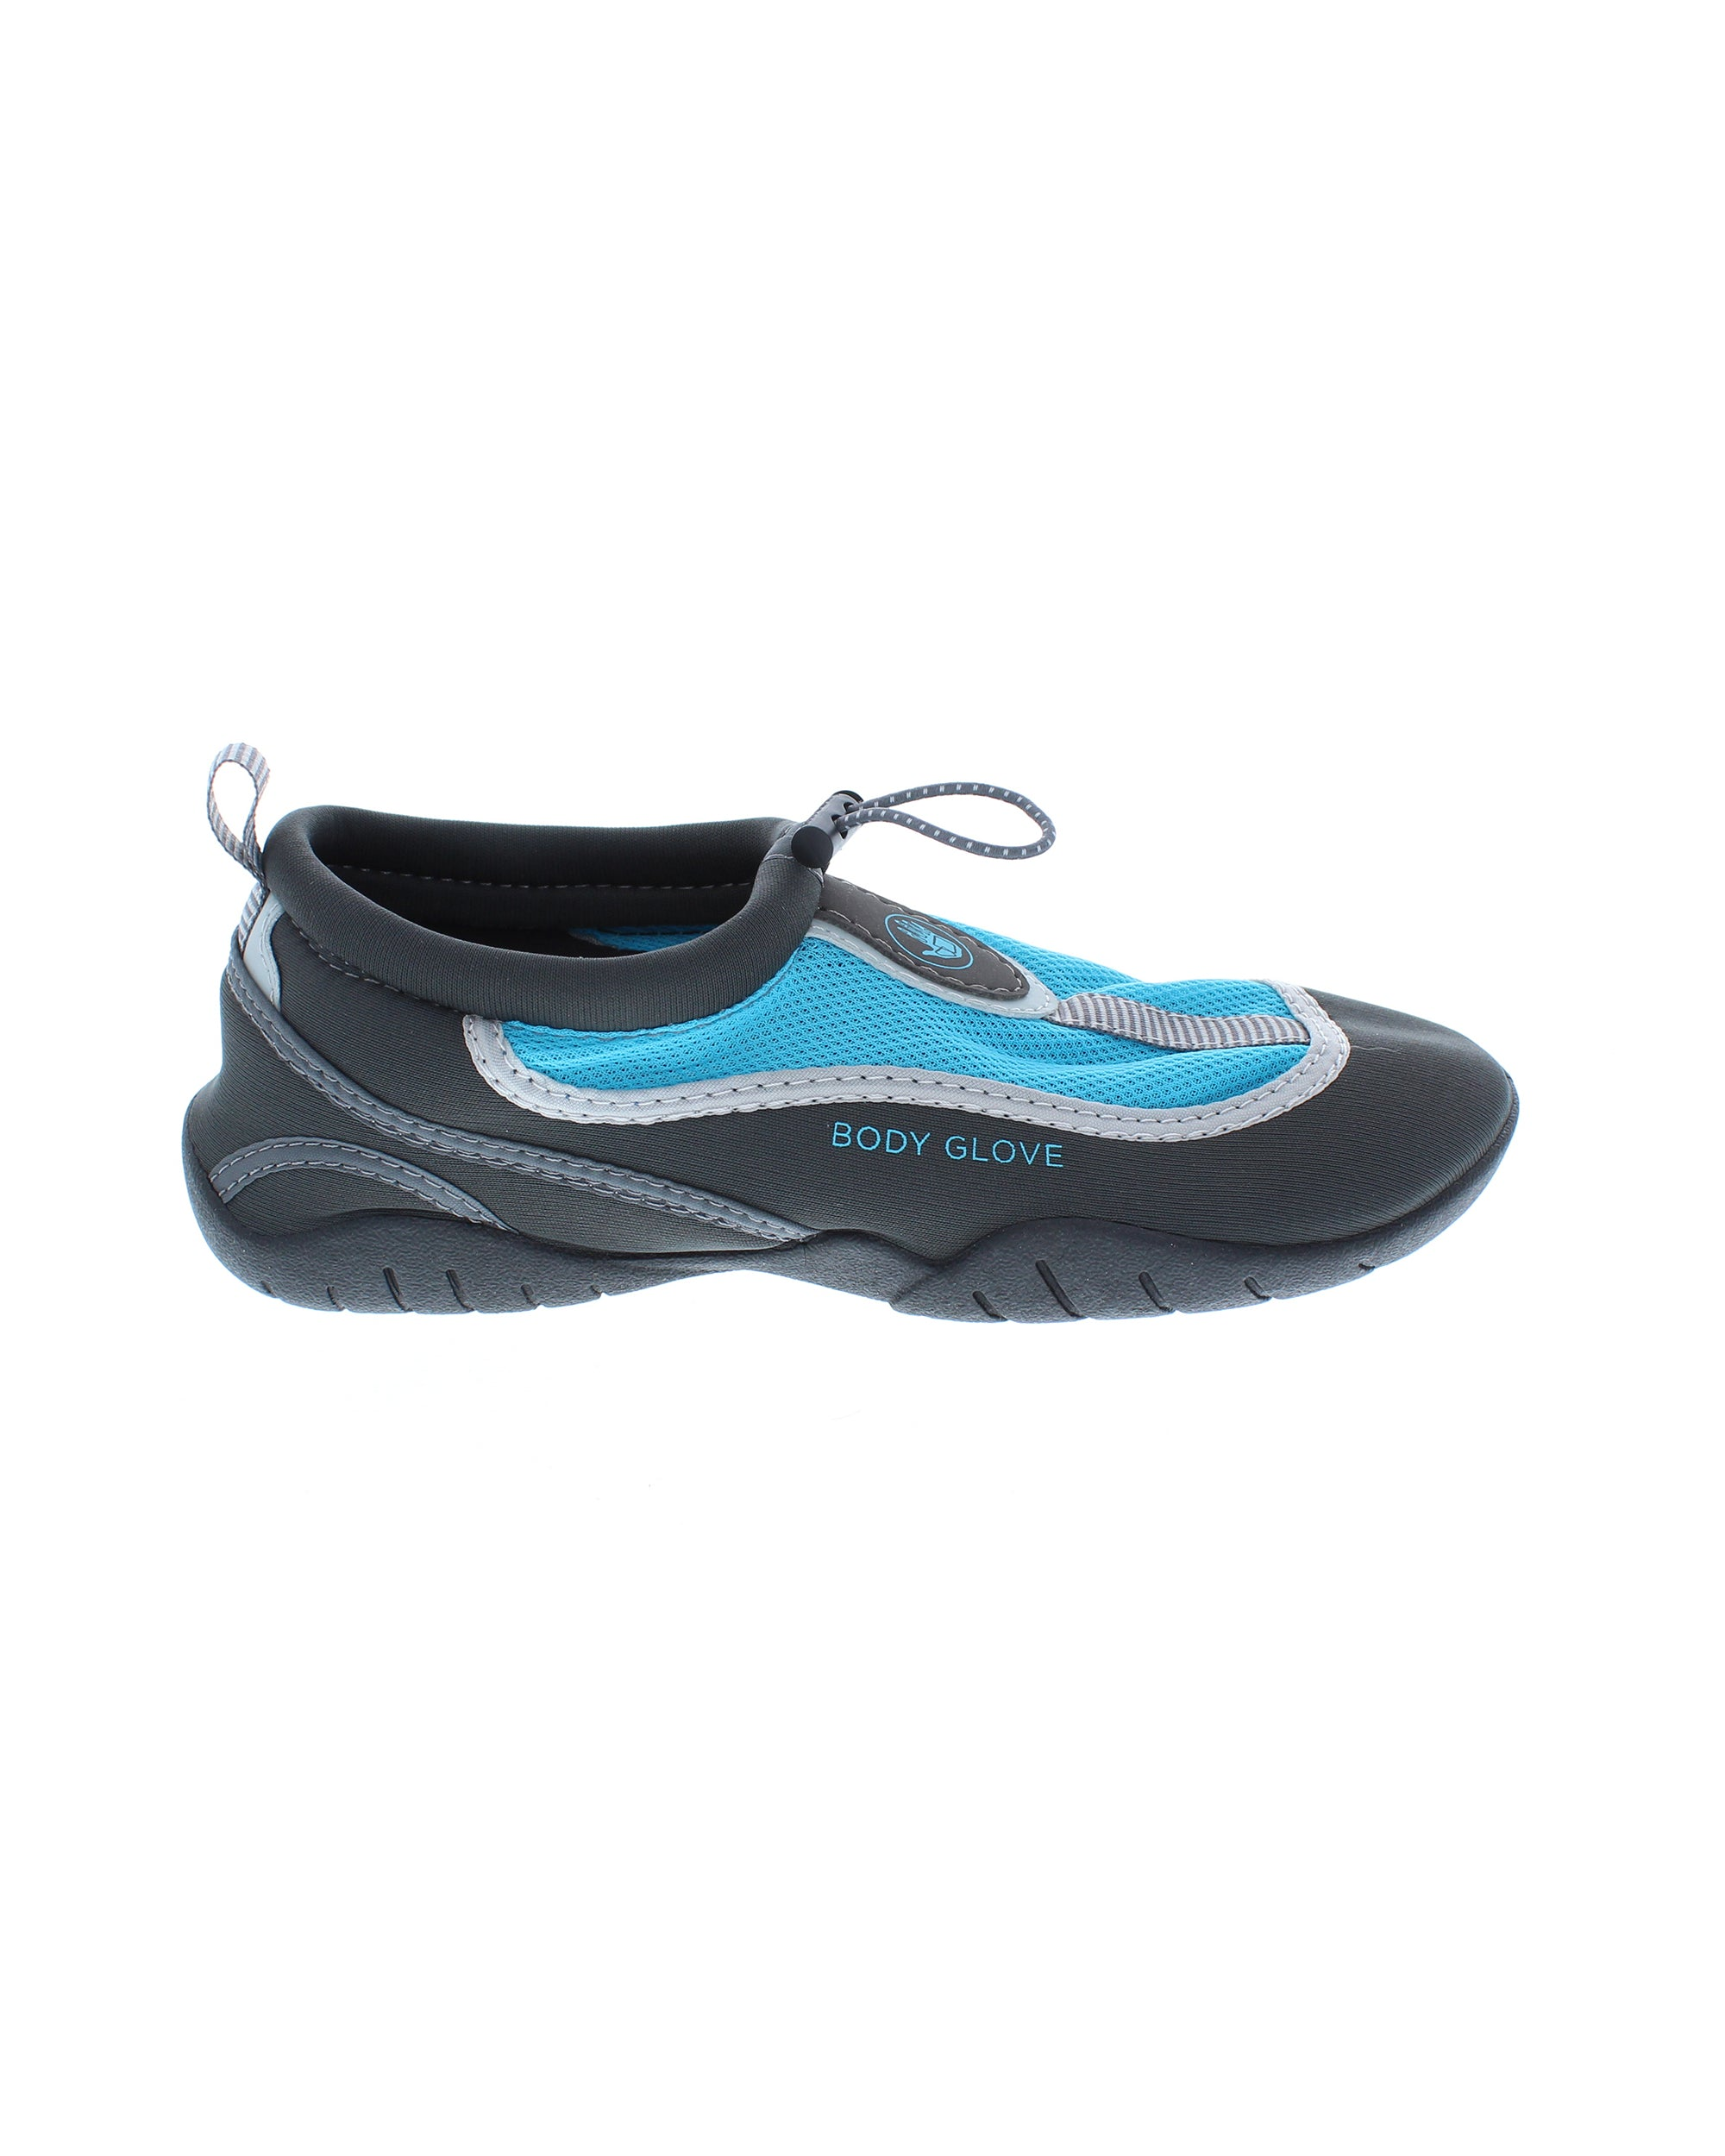 Women's Riptide III Water Shoes - Dark Shadow/Oasis Blue